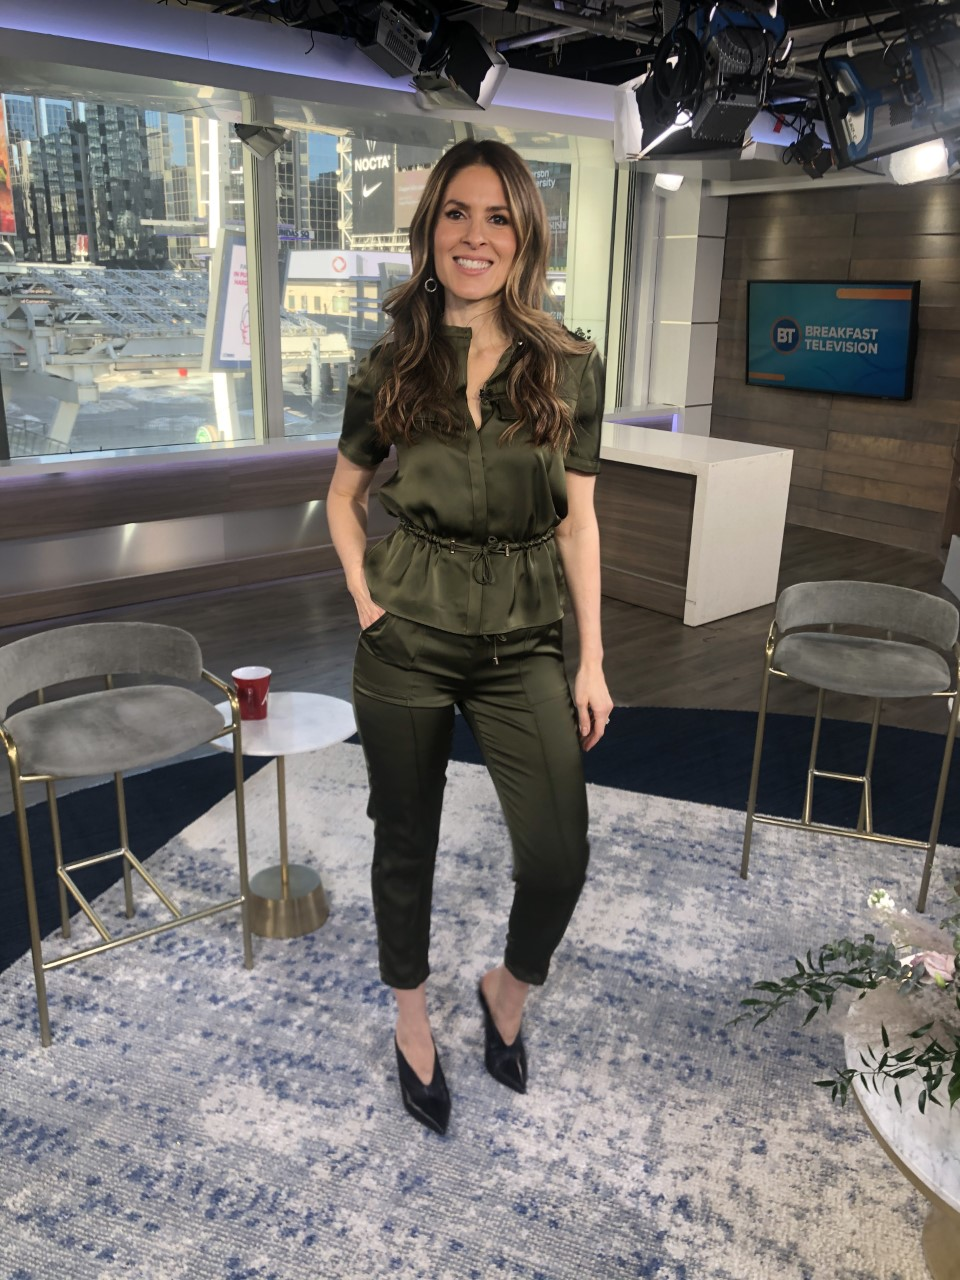 Dina wearing army green silk top with bottoms